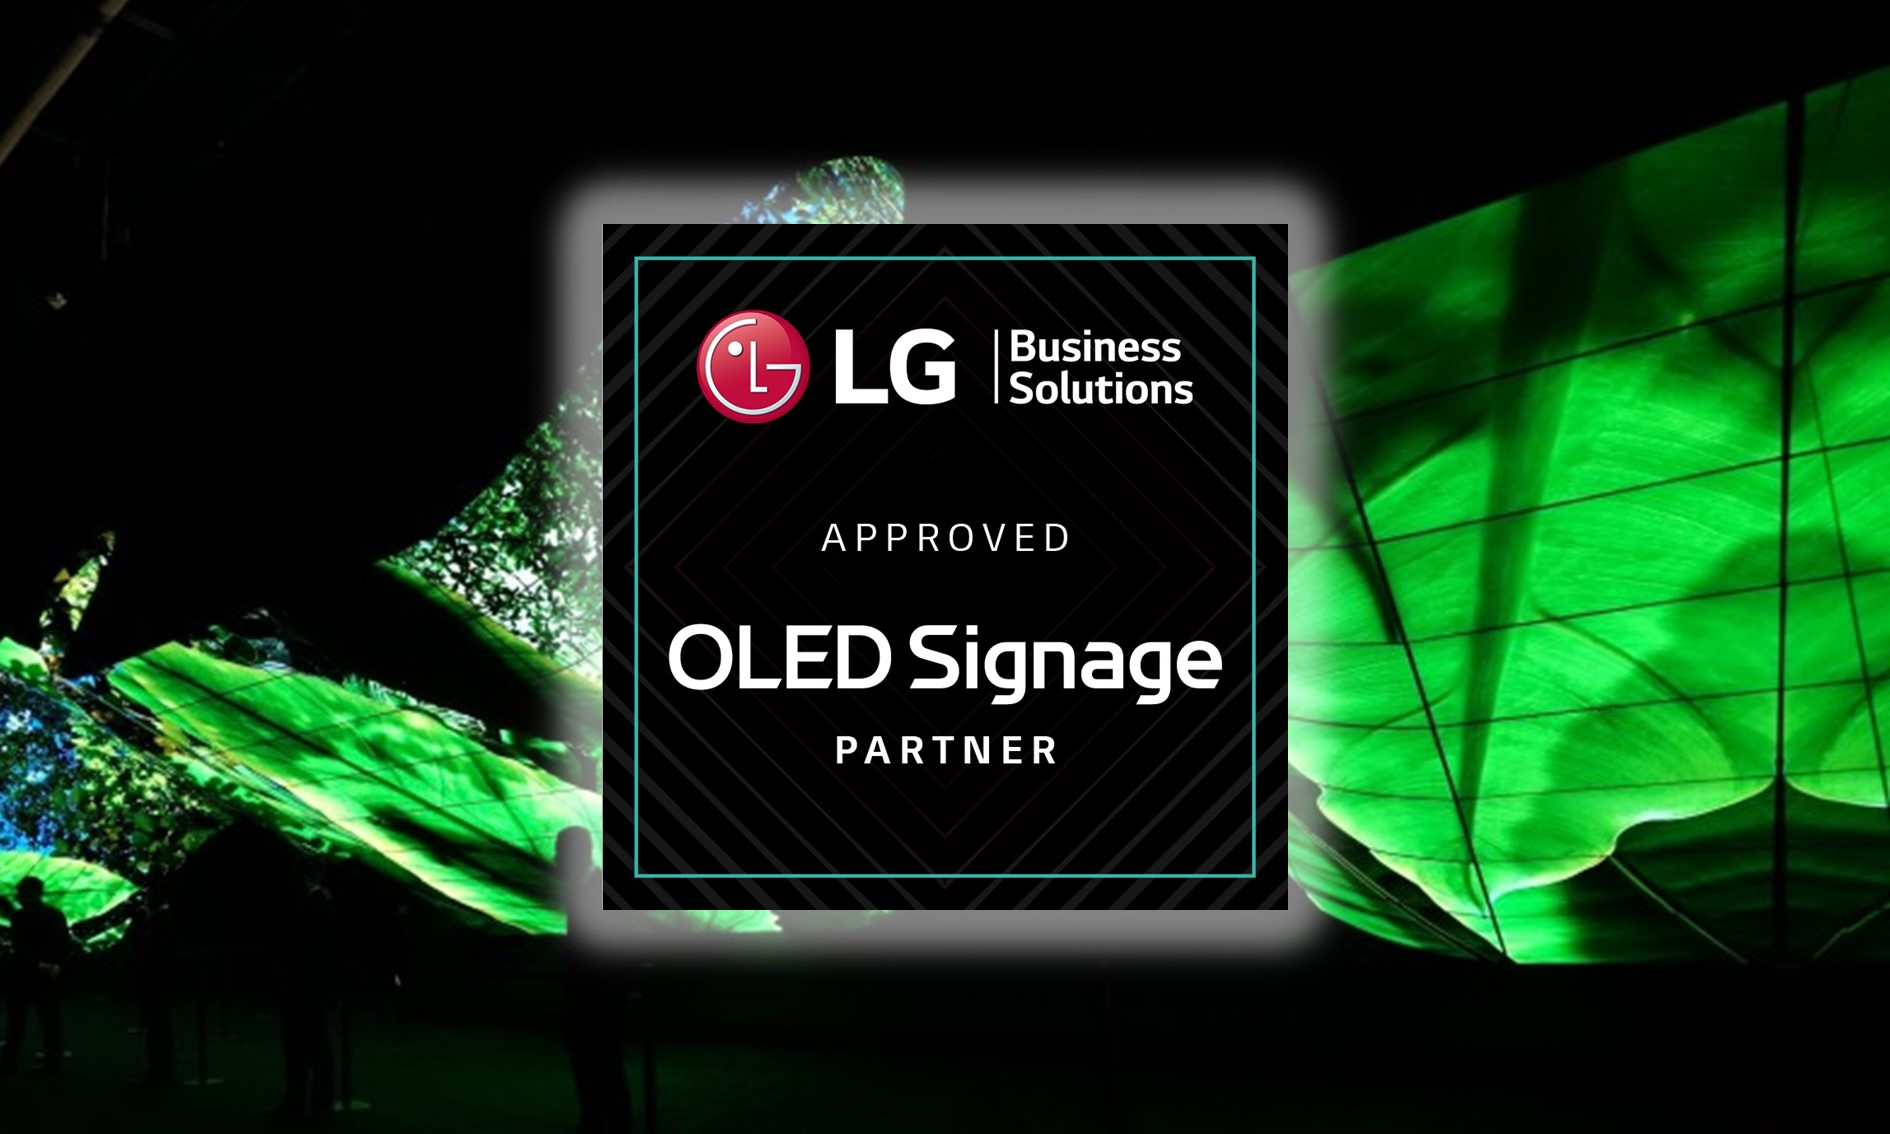 Approved OLED Signage Partner